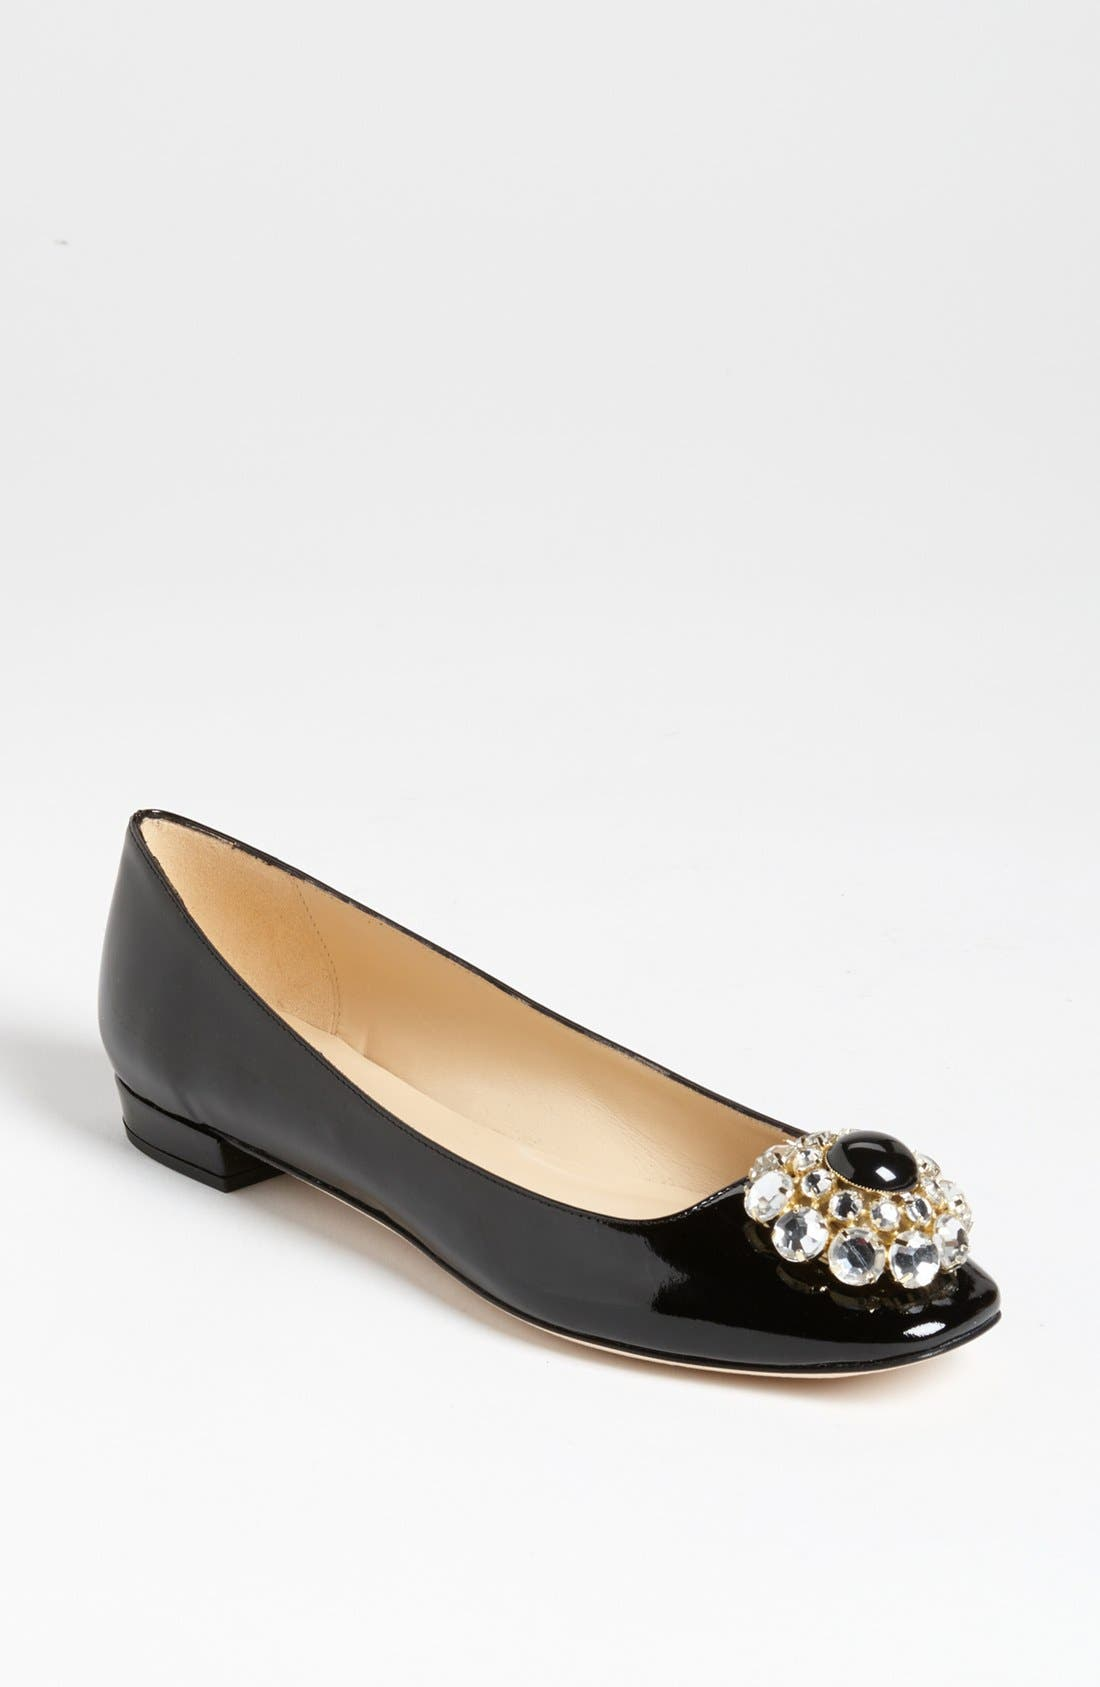 Main Image - kate spade new york 'notion' flat